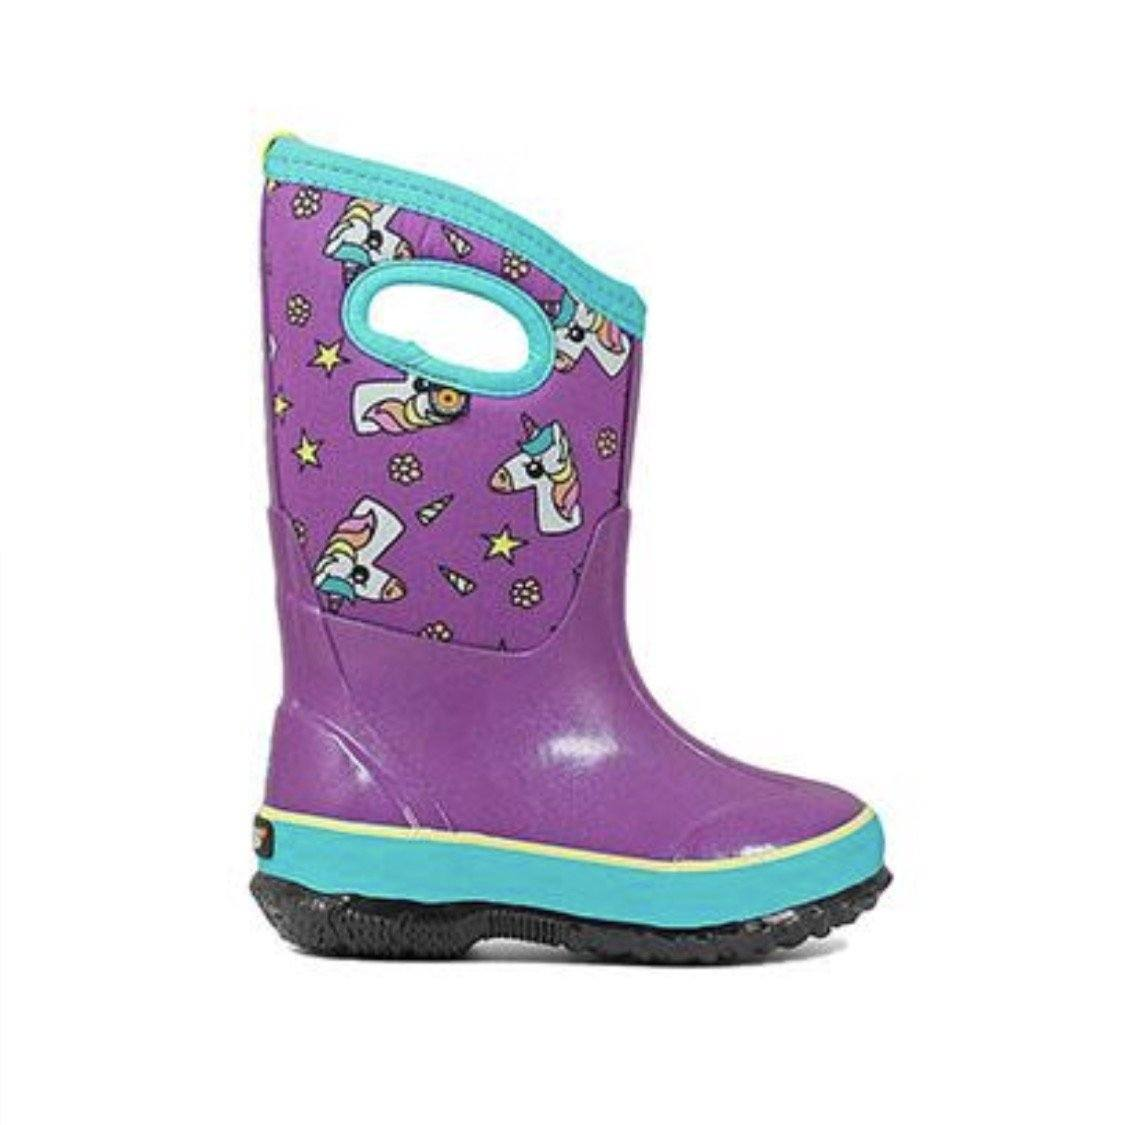 BOGS 72497-540 - Classic Handles Unicorn Print Kids' Insulated Boots (Toddler 7 - Youth 2) Footwear Bogs